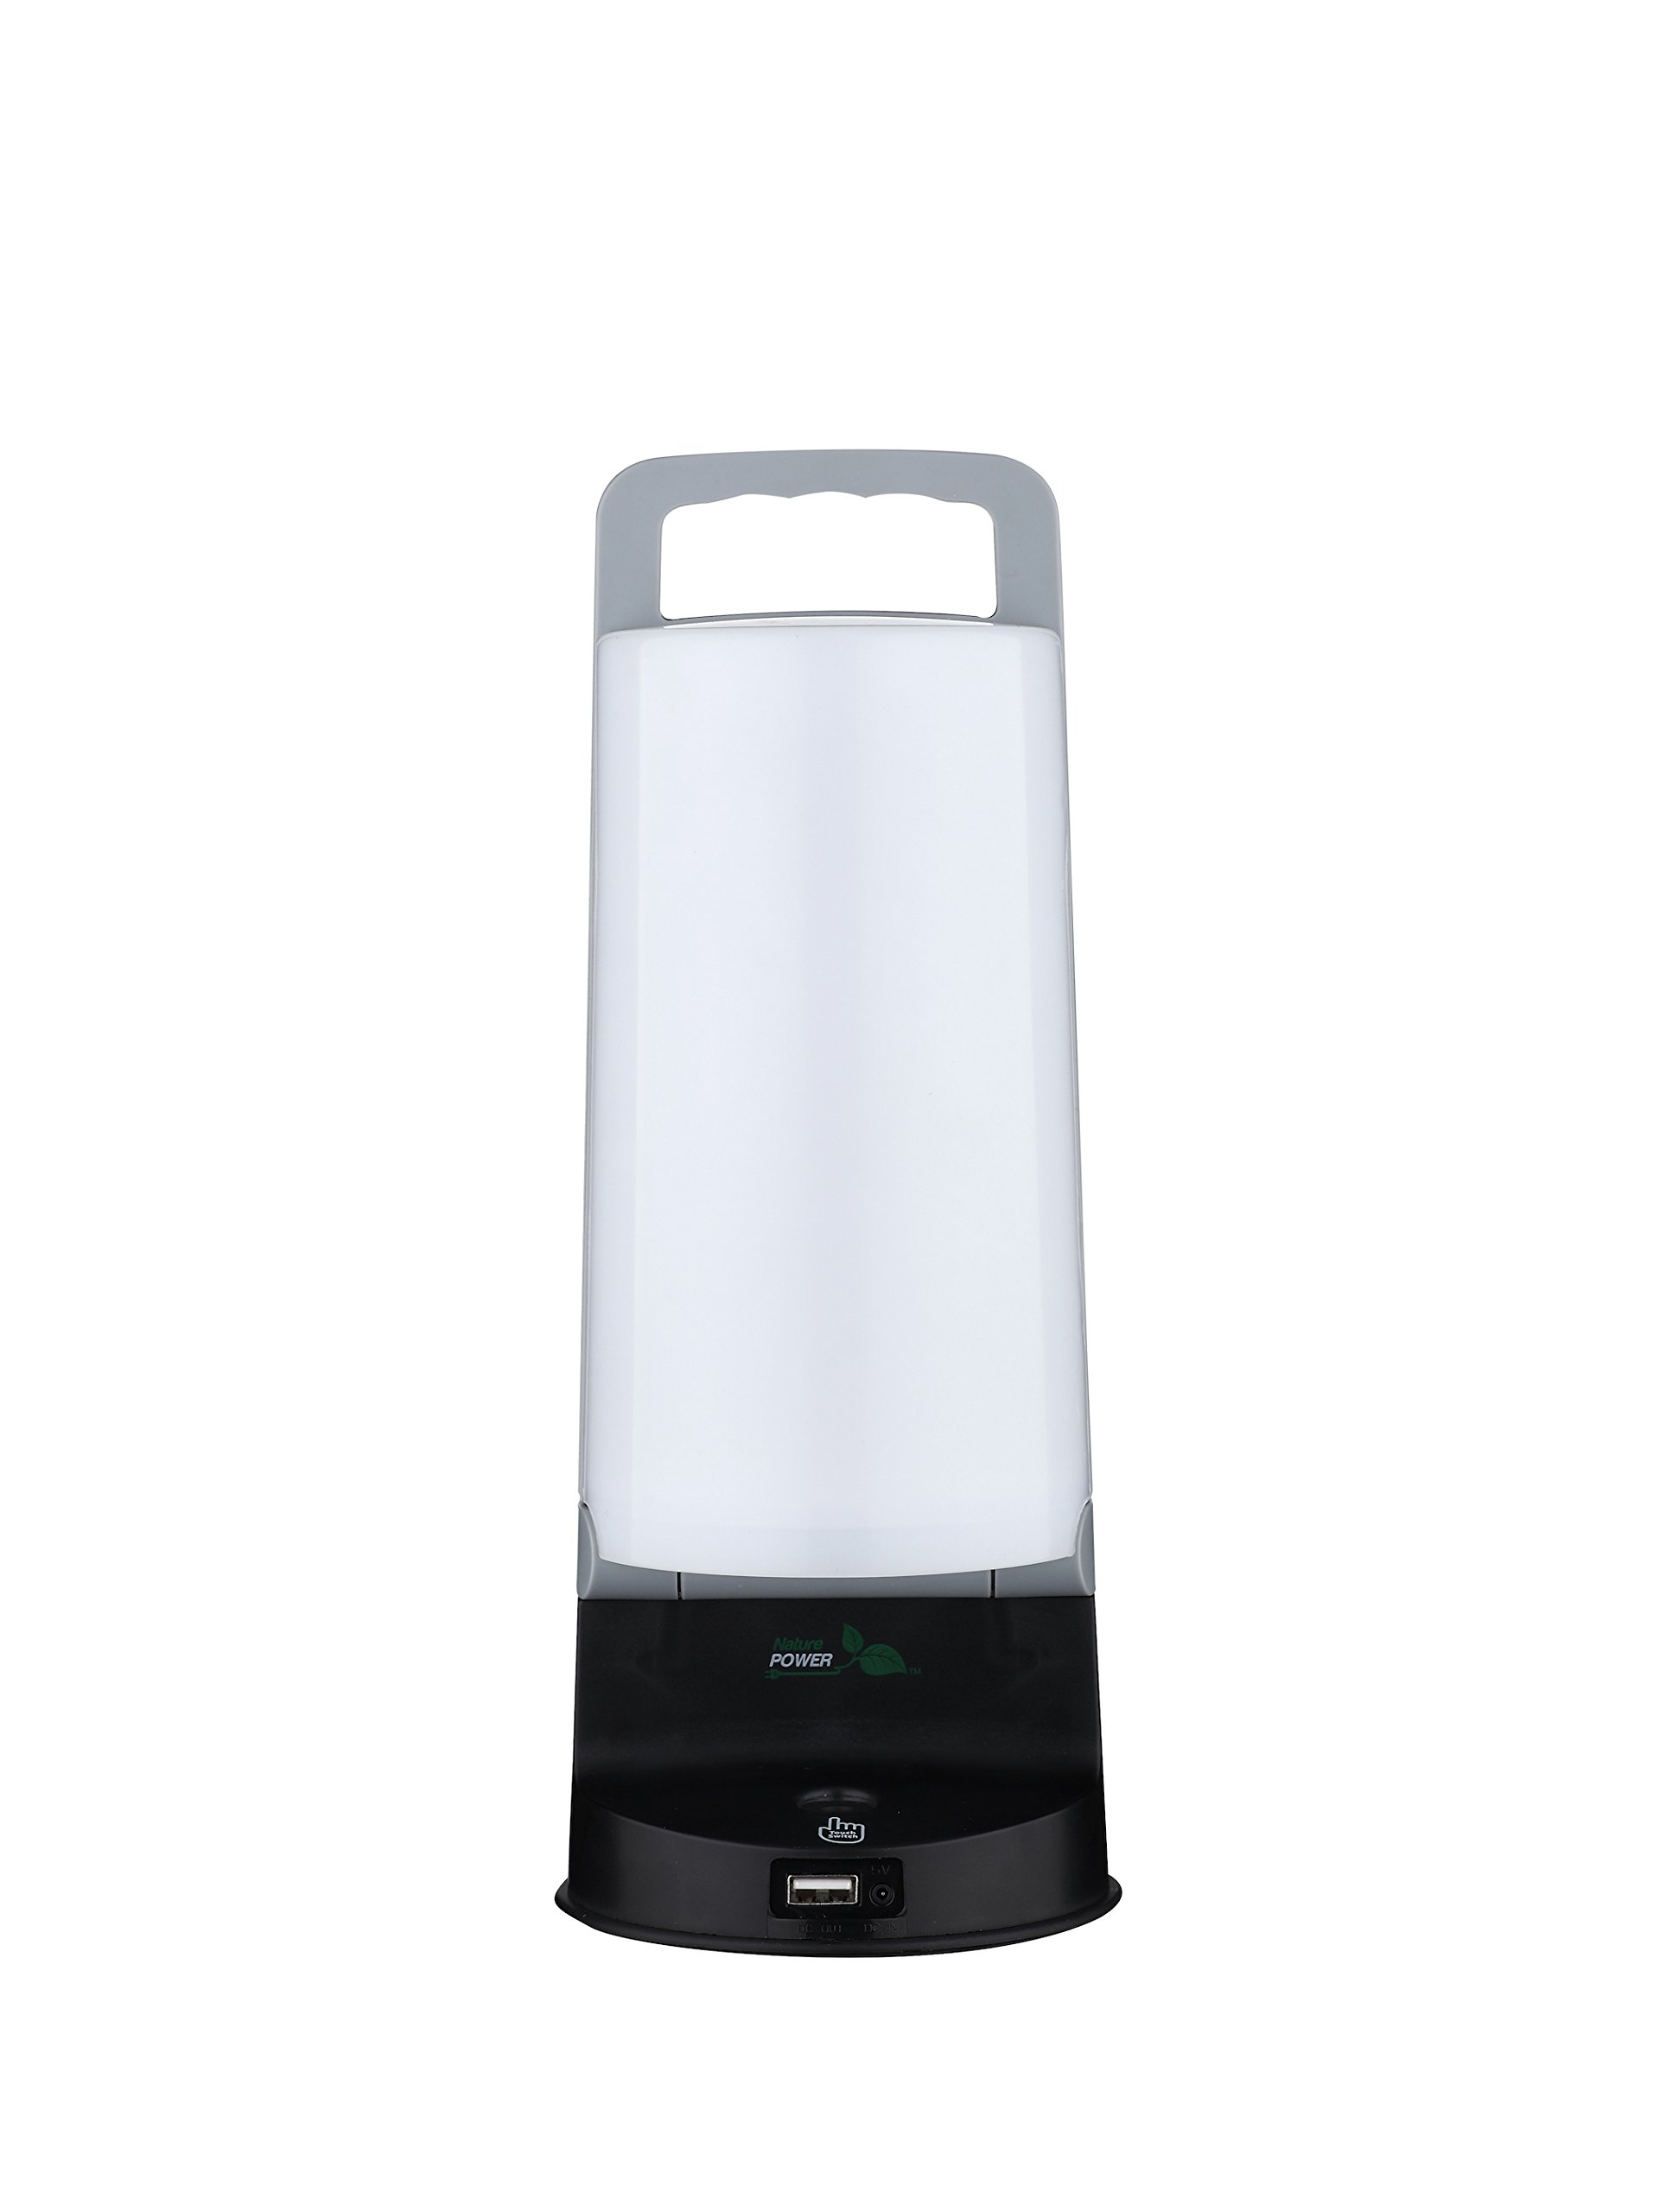 Nature Power 24803 ECO Solar Powered LED Lantern with USB Charger